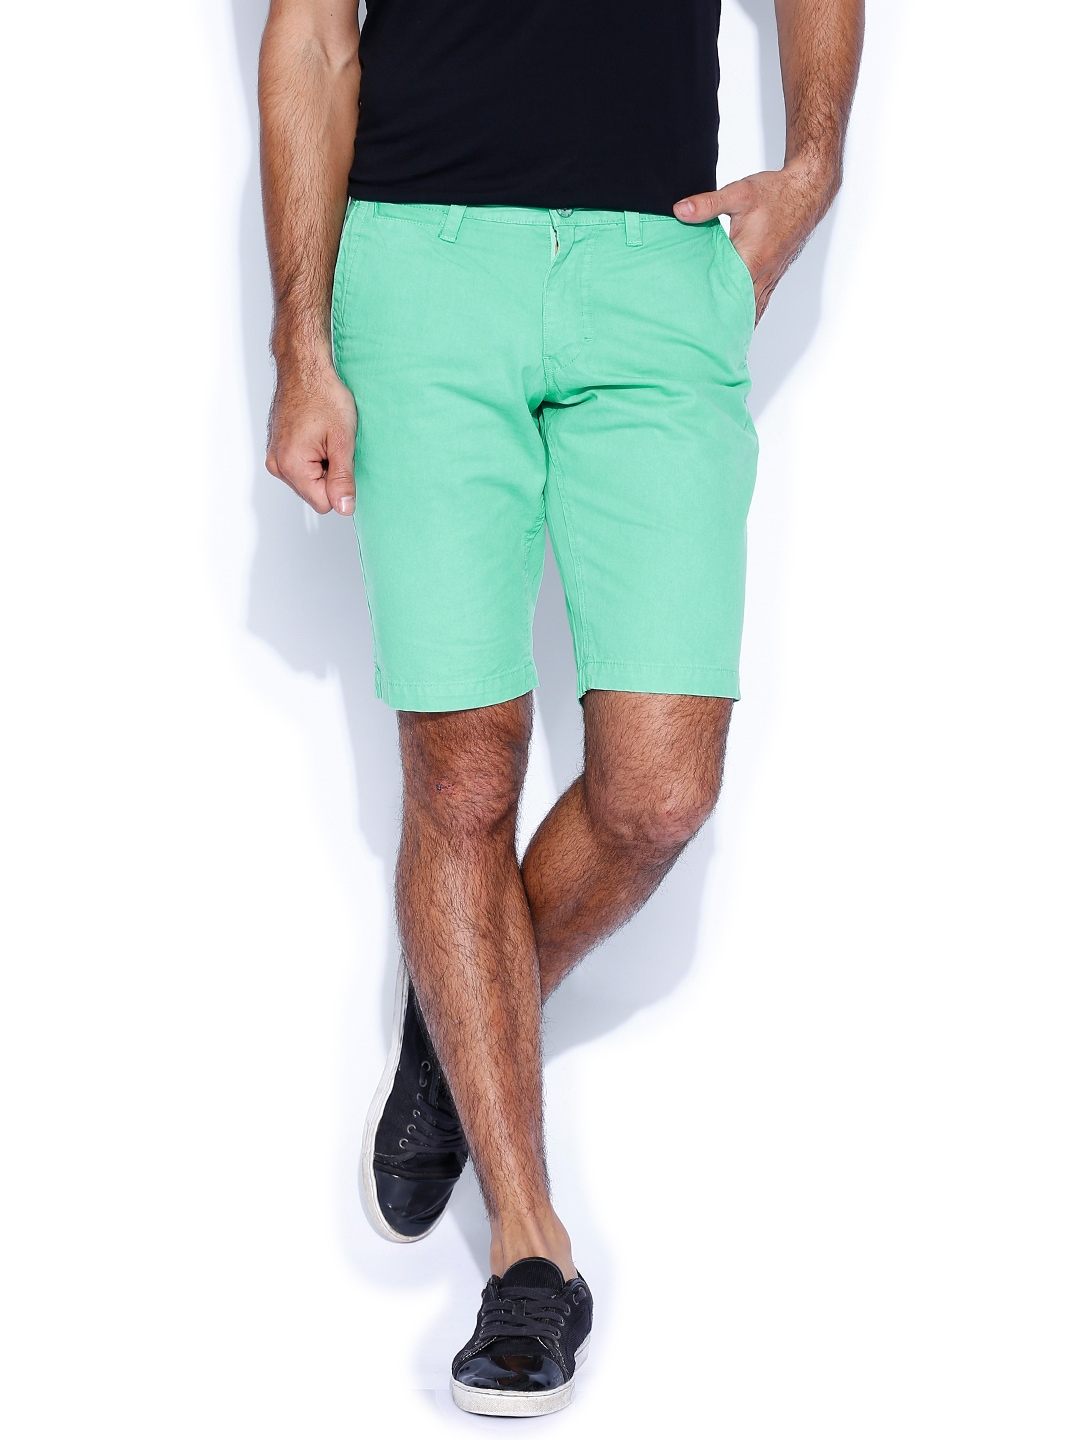 hindu single men in etna green 562 percent of men over 15 years old in etna green are american indian and alaska native population in etna etna green, indiana the total number of single.